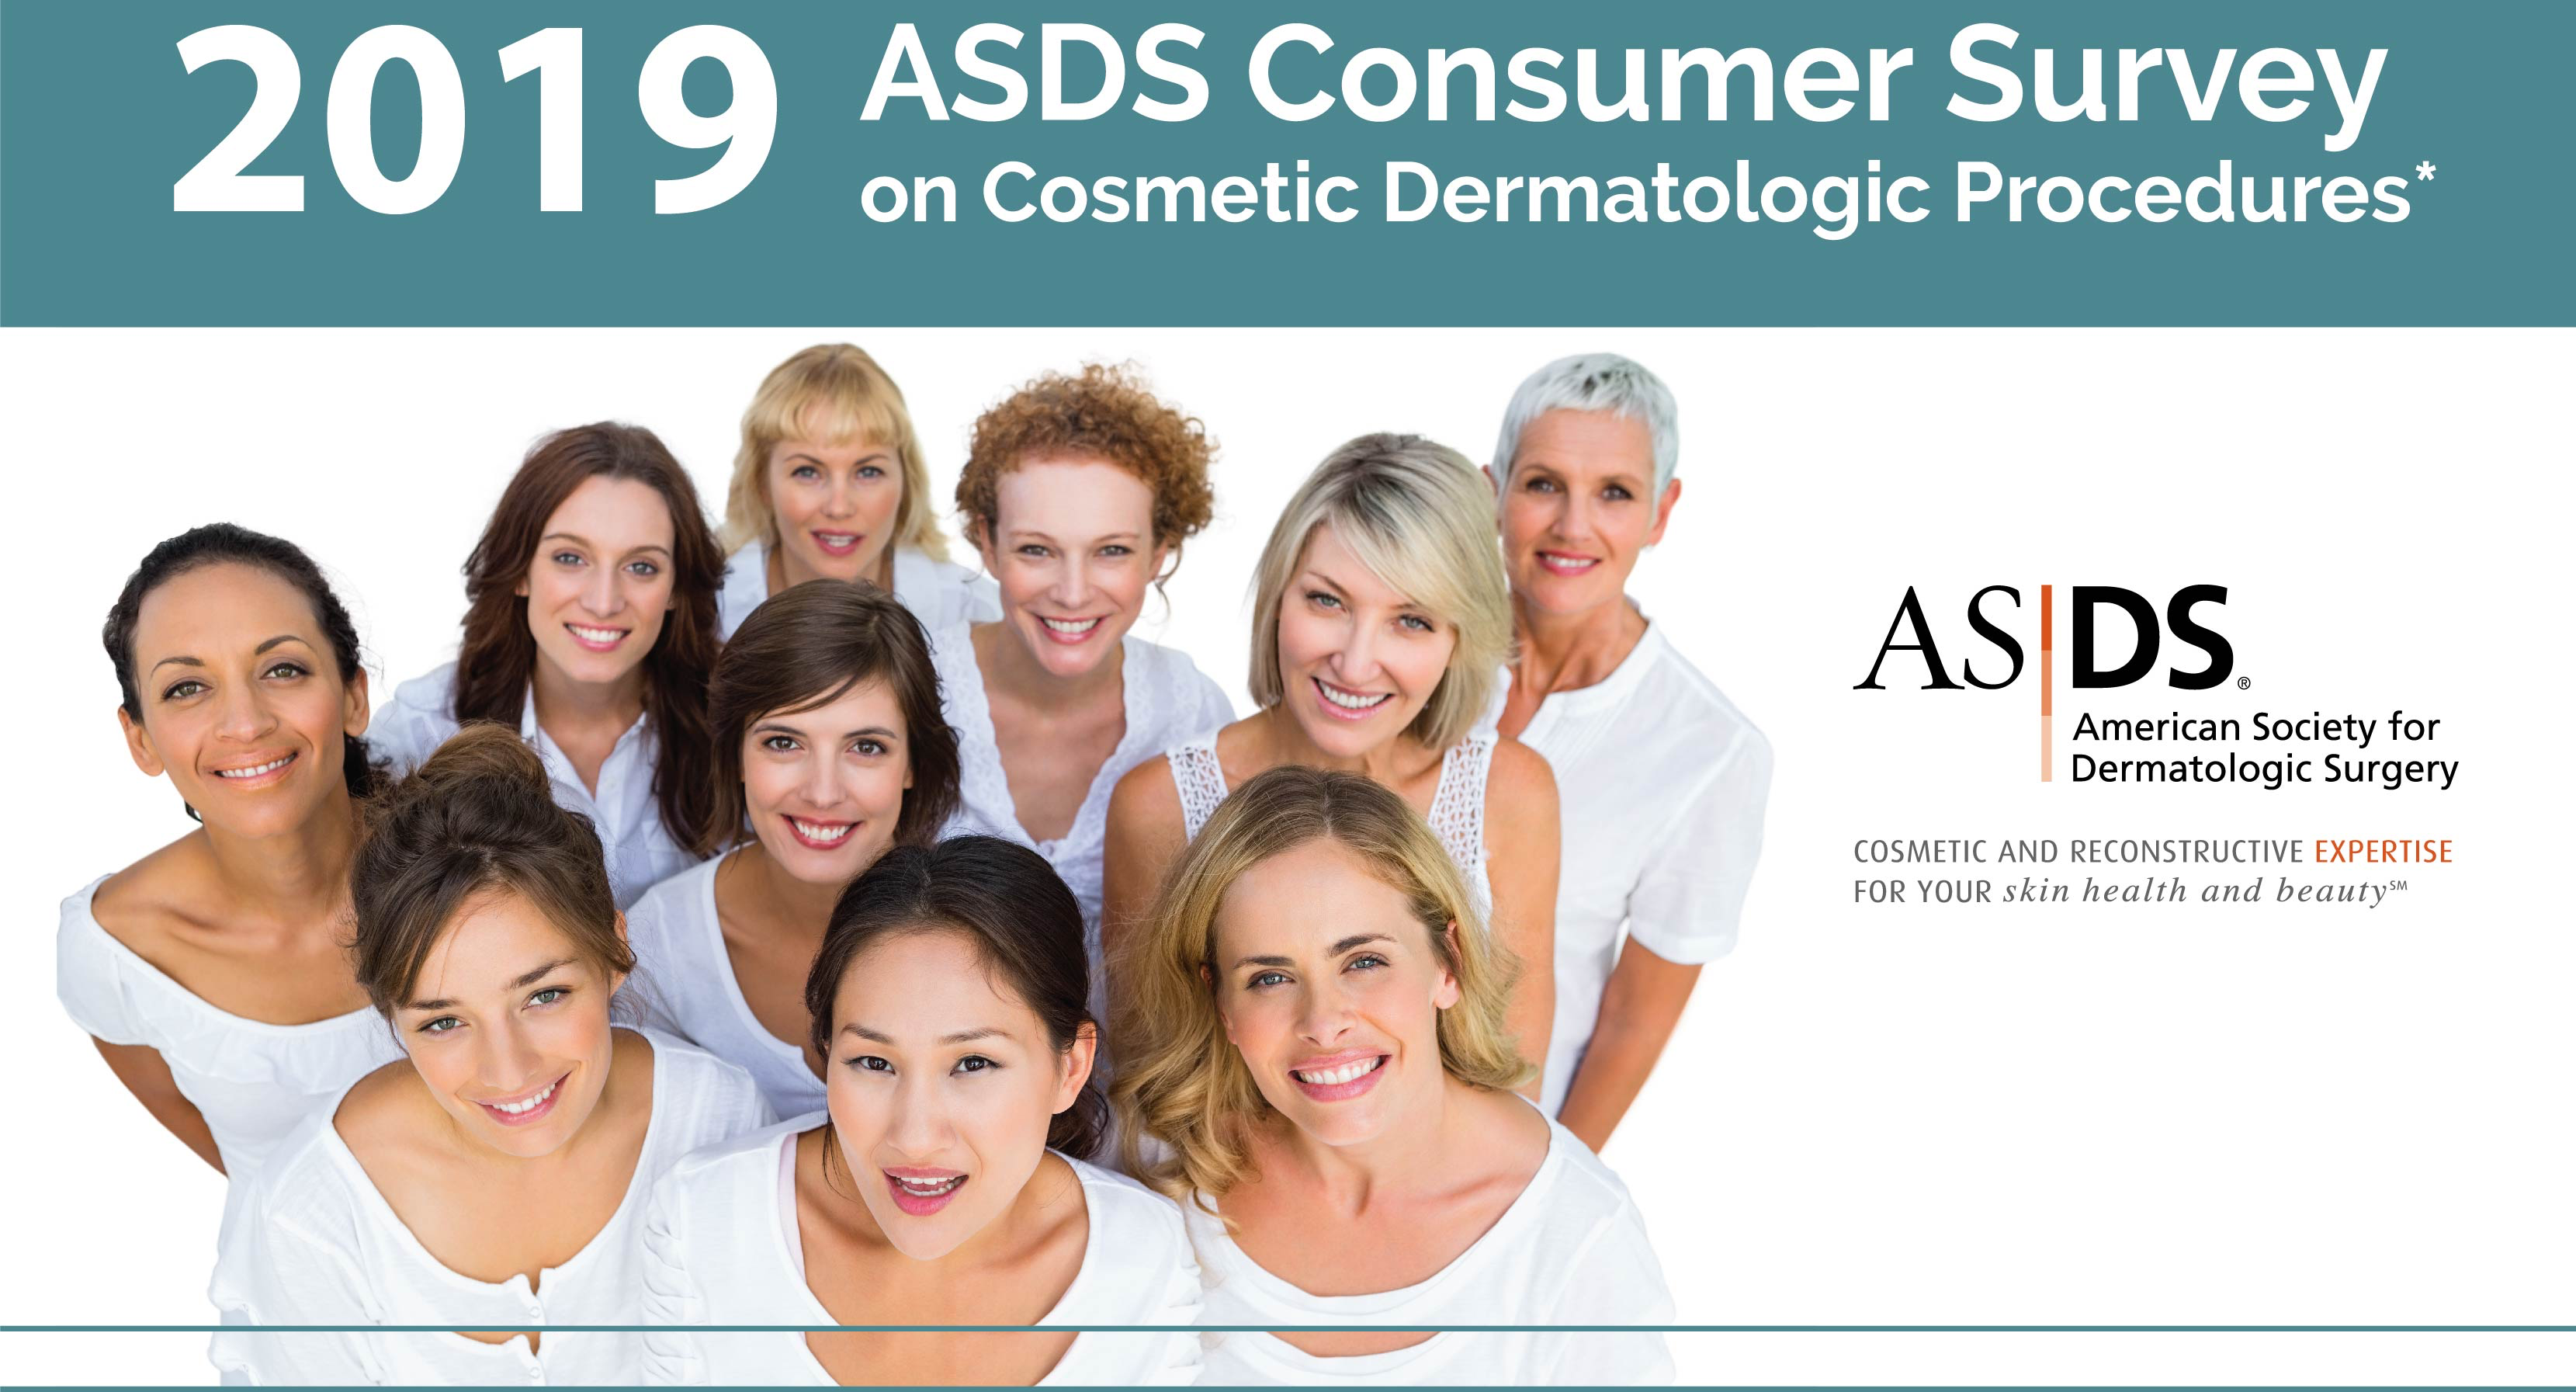 Consumers Site Dermatologists as Top Influencers of Cosmetic Procedure, Skin Care Choices: ASDS image